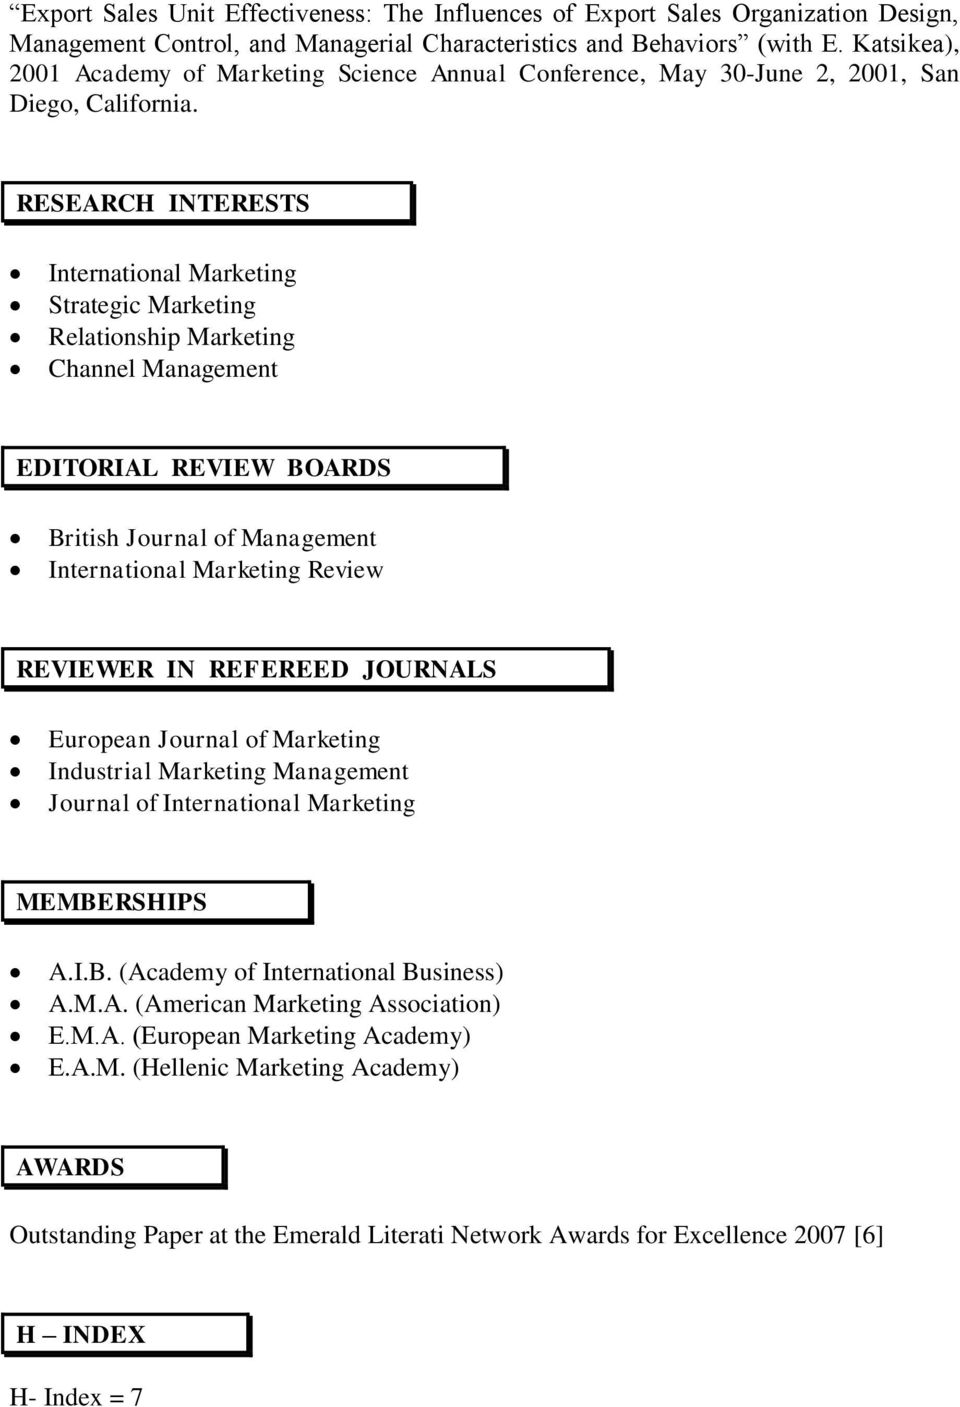 RESEARCH INTERESTS International Marketing Strategic Marketing Relationship Marketing Channel Management EDITORIAL REVIEW BOARDS British Journal of Management International Marketing Review REVIEWER